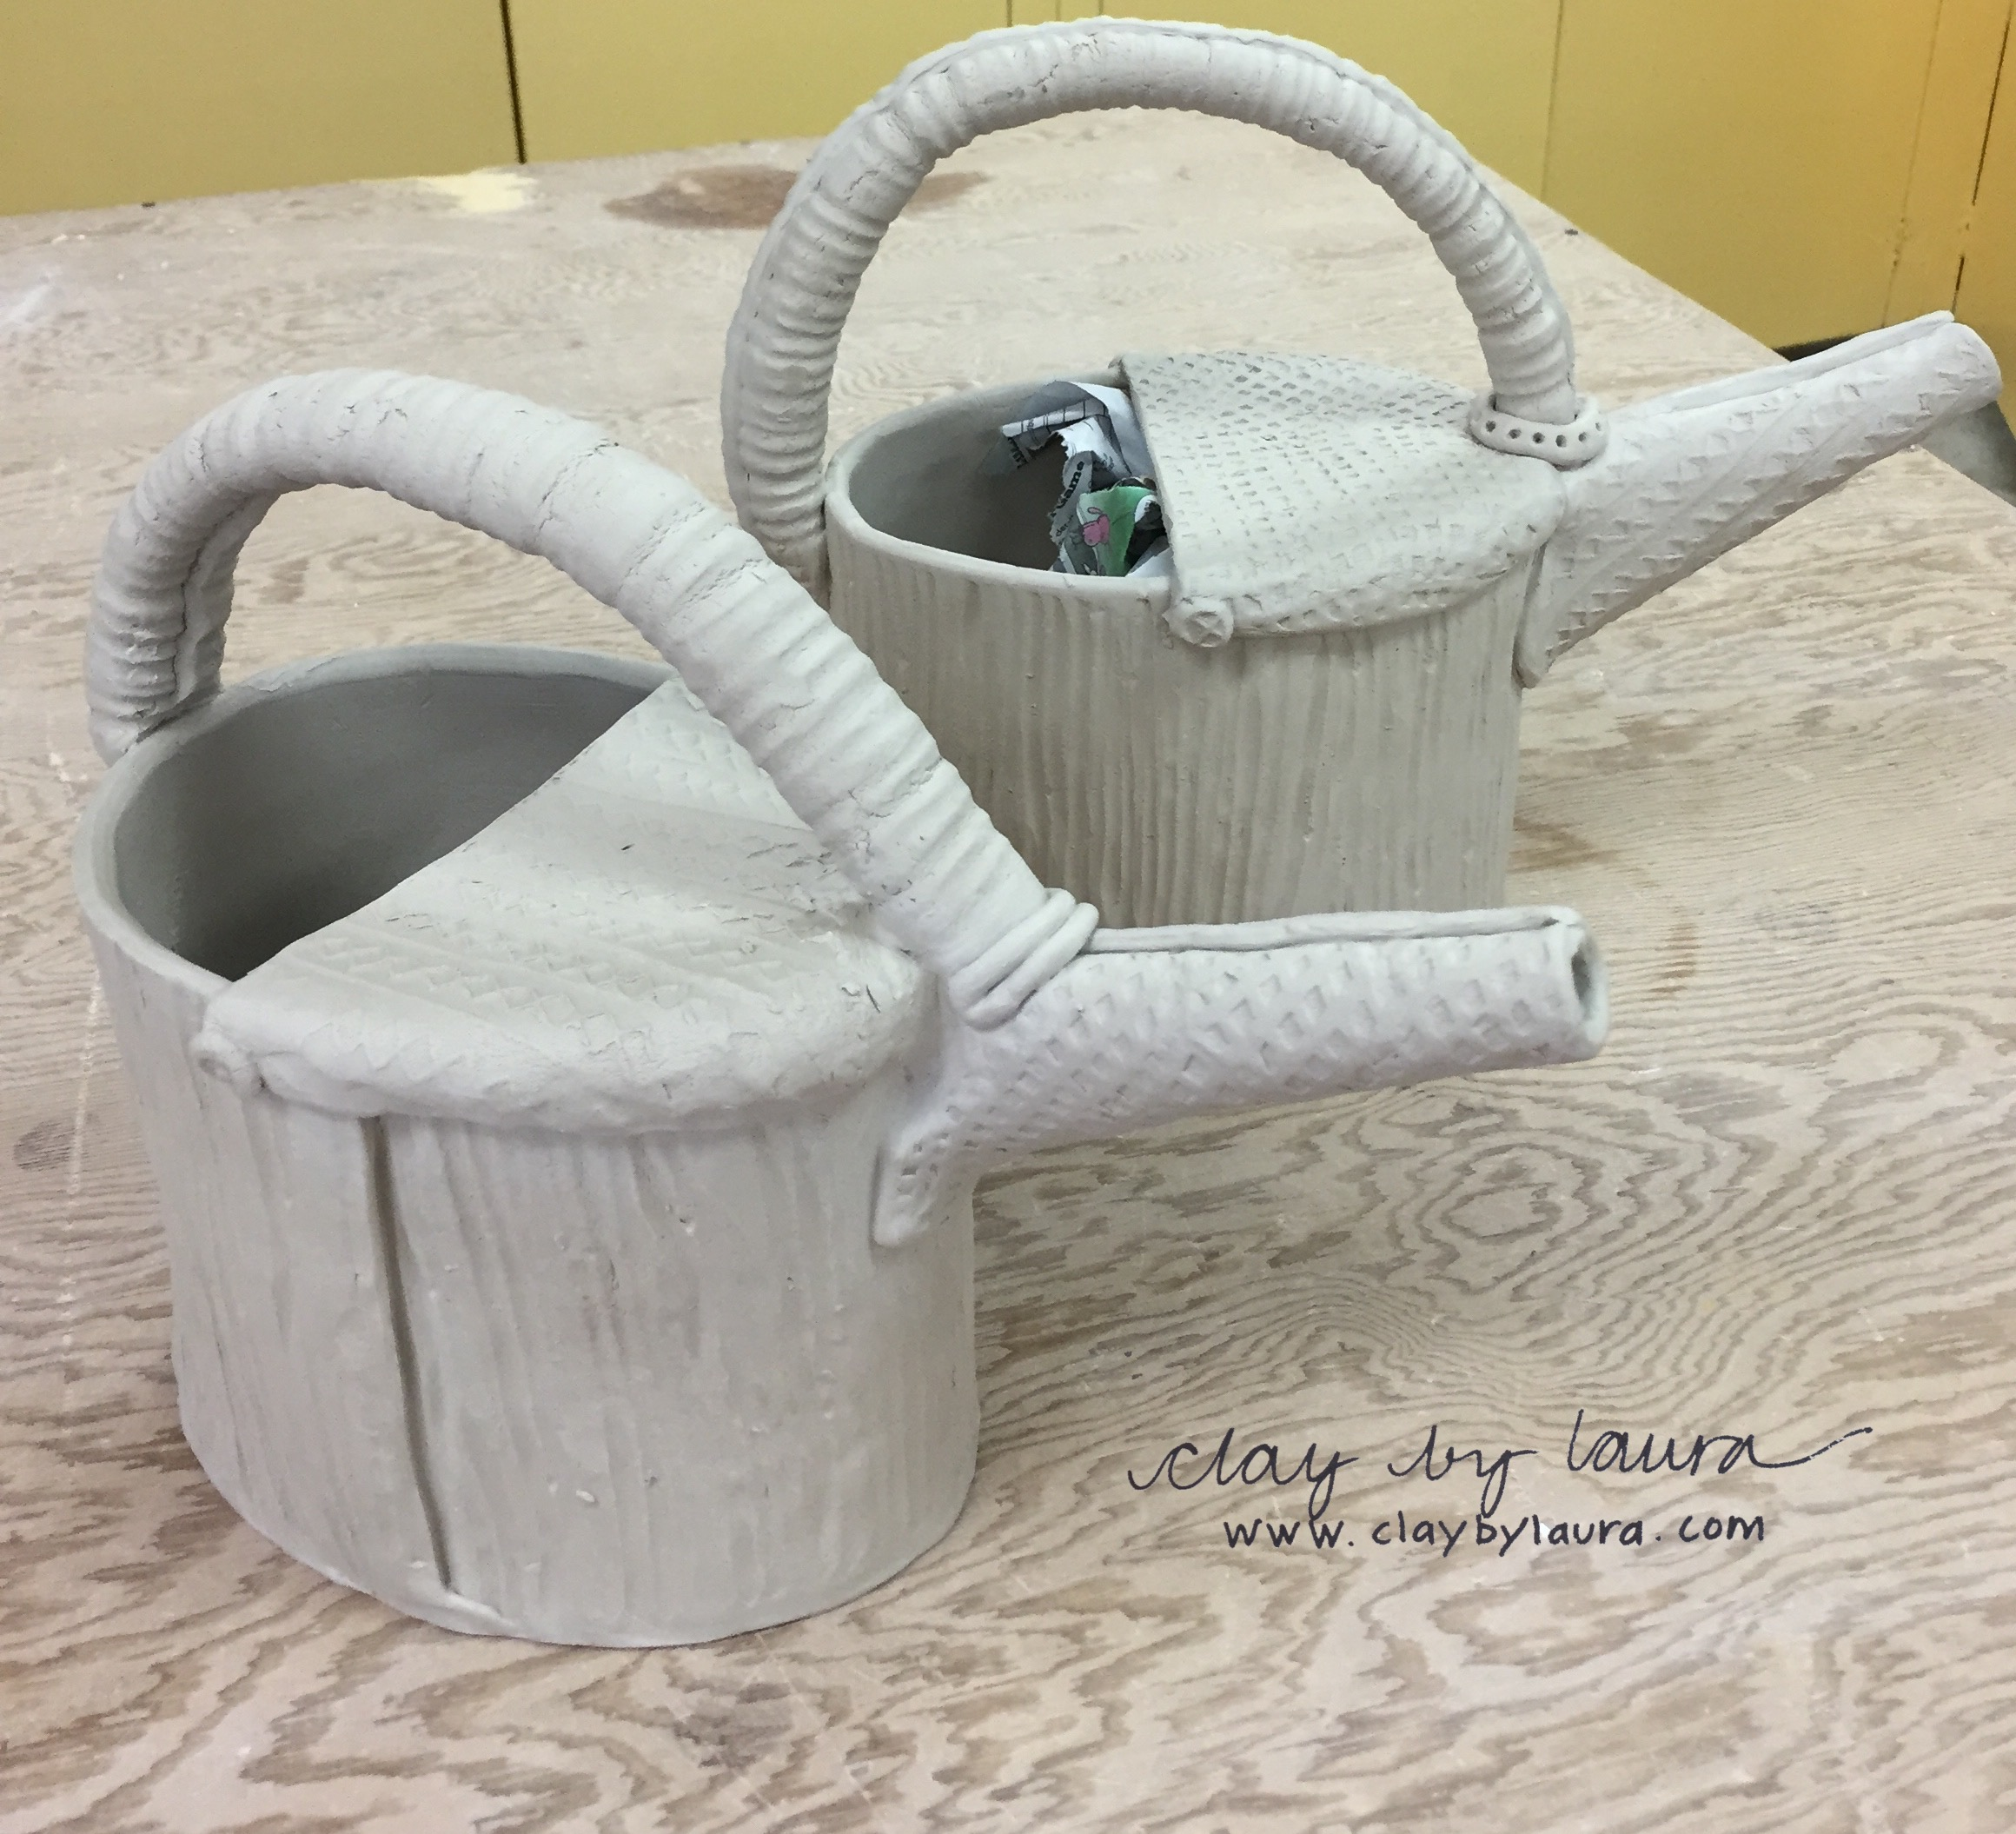 I'm confident Spring will arrive eventually. In preparation, I'm developing a new watering can shape that can be used to nourish a growing garden or plant and hold a bunch of freshly picked flowers for display!